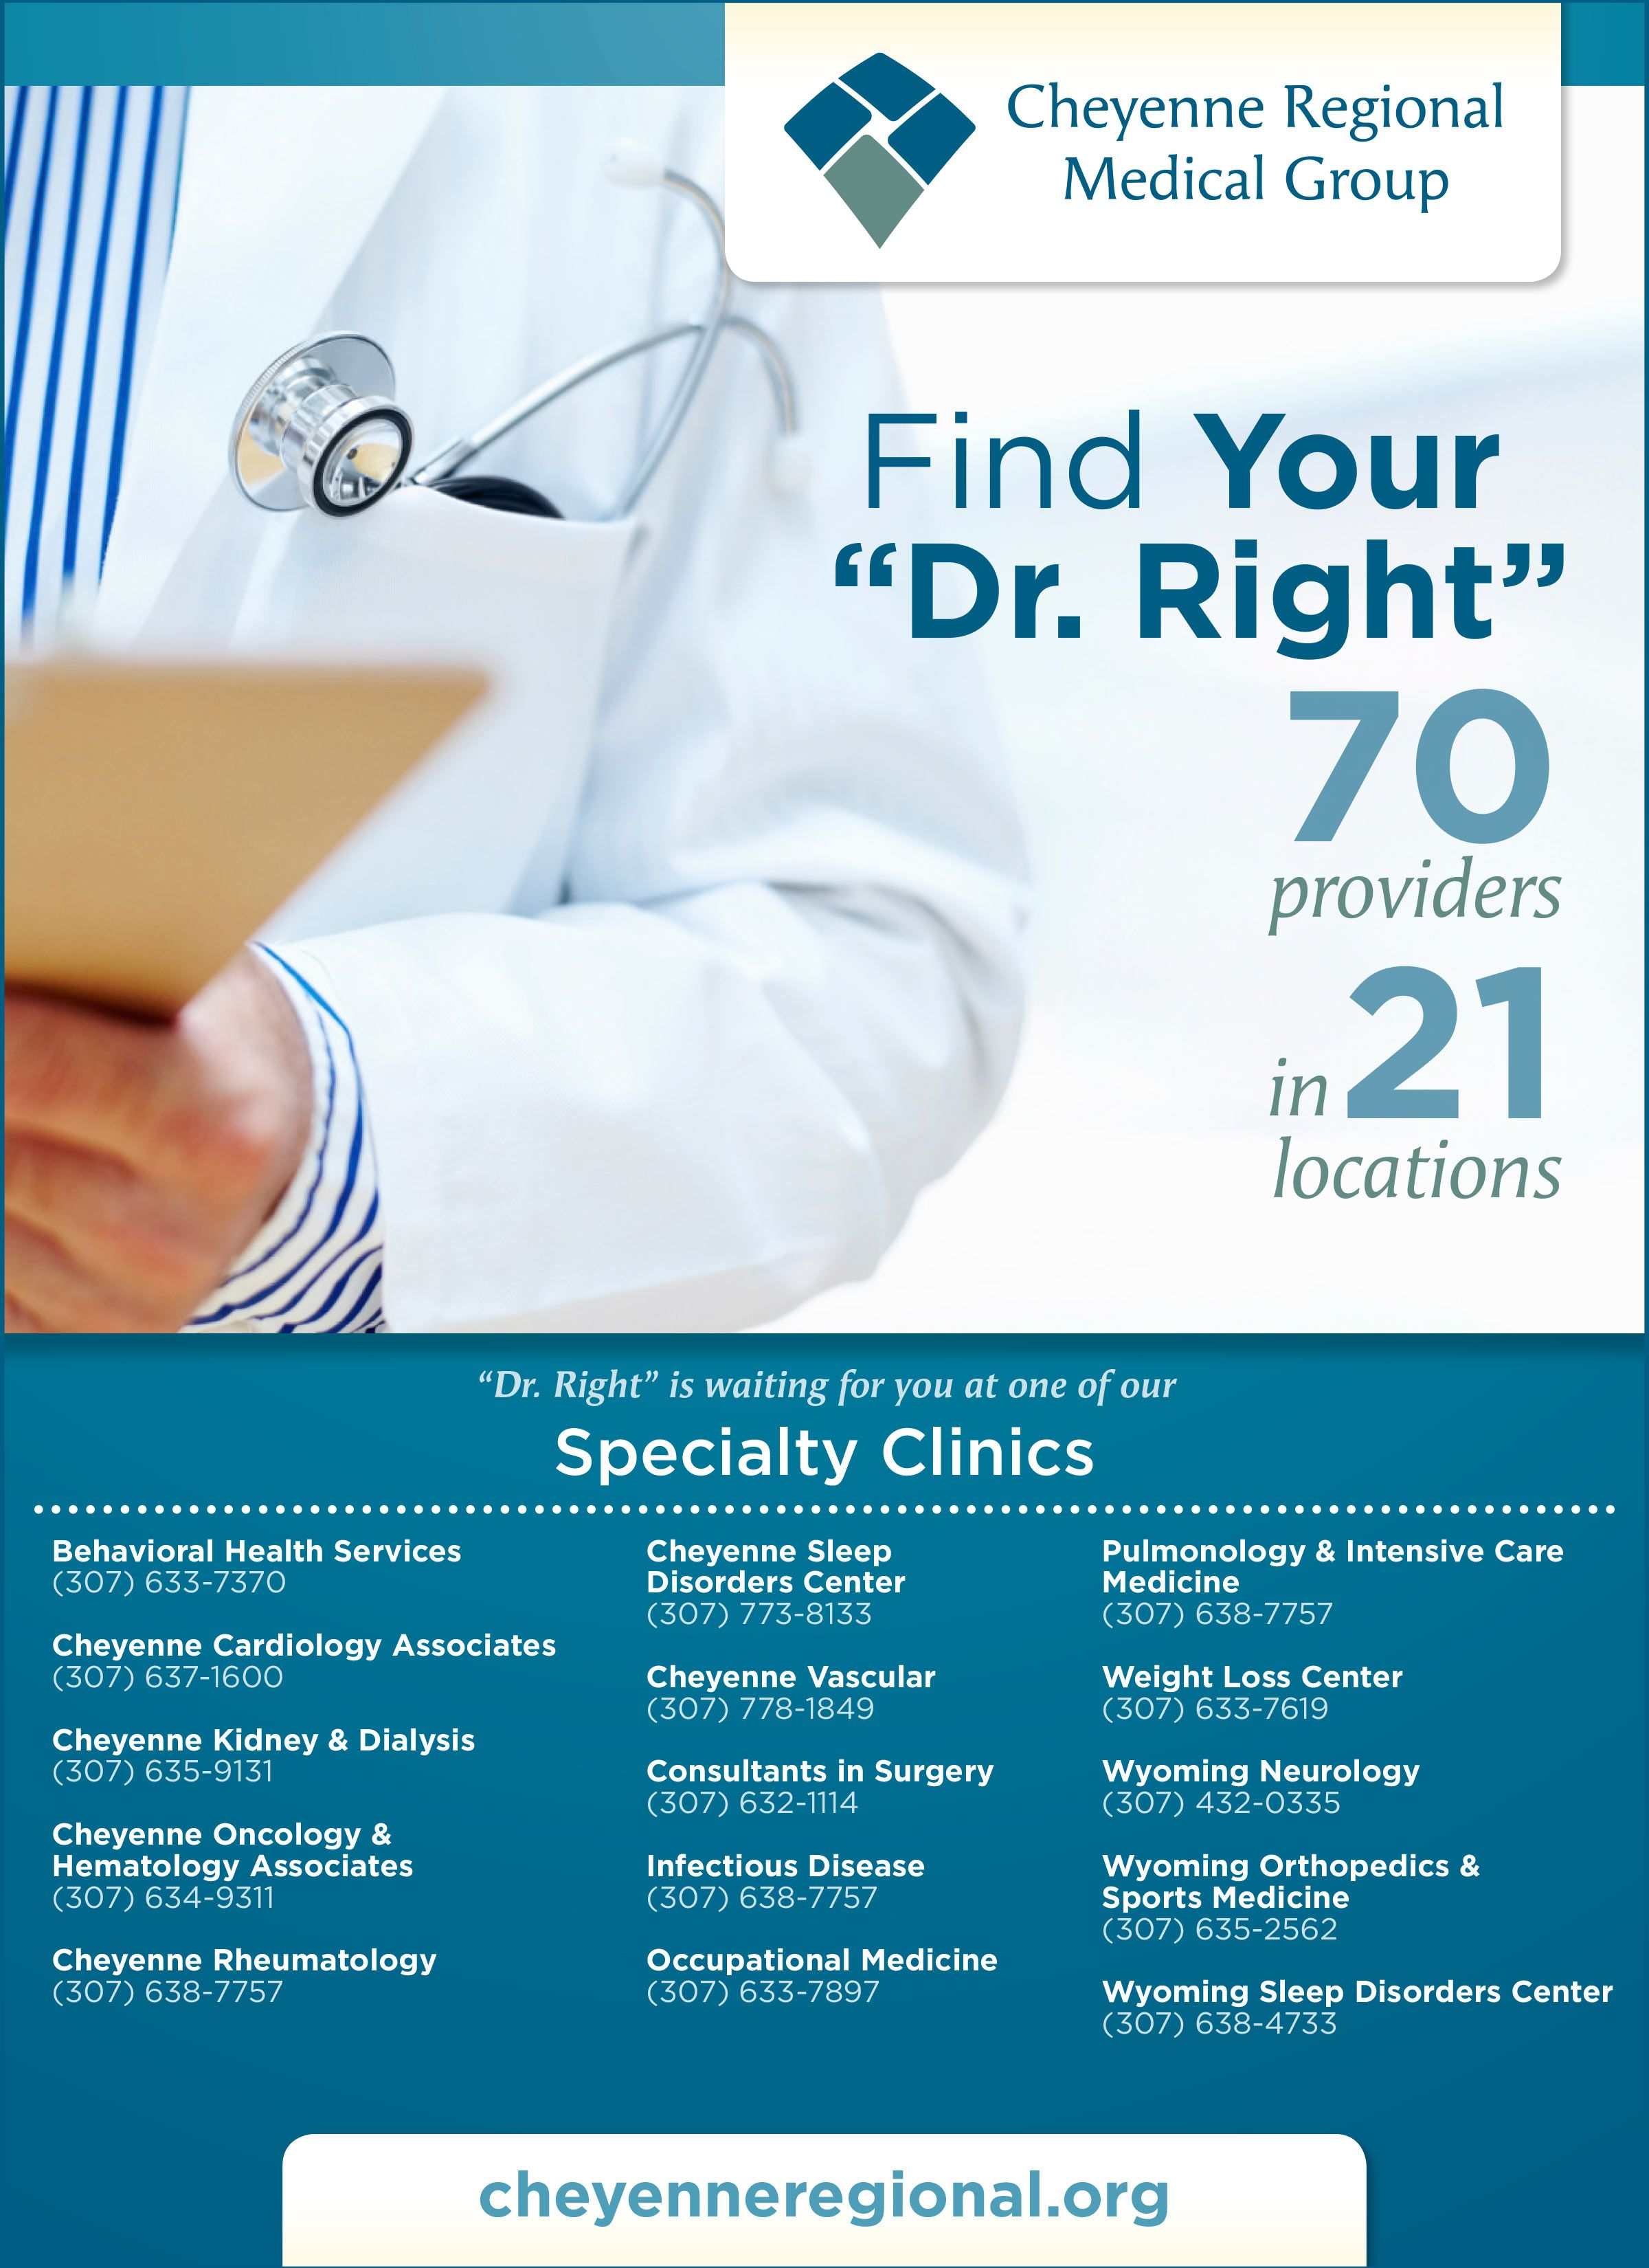 Find your dr right cheyenne regional medical group